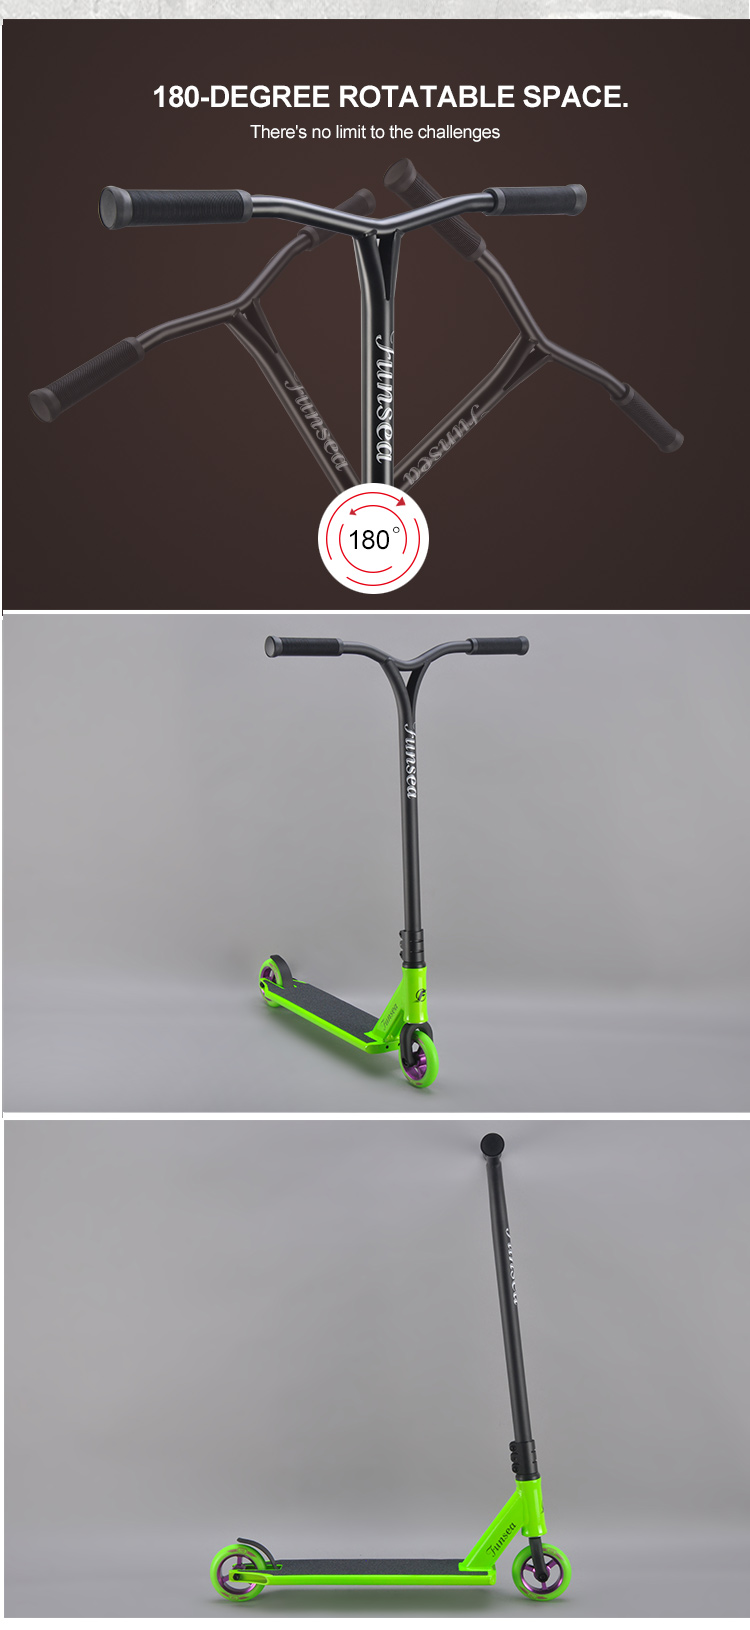 China factory extreme kids stunt bmx foot trick scooters wide folding electric wheel freestyle kick scooter adult for sale